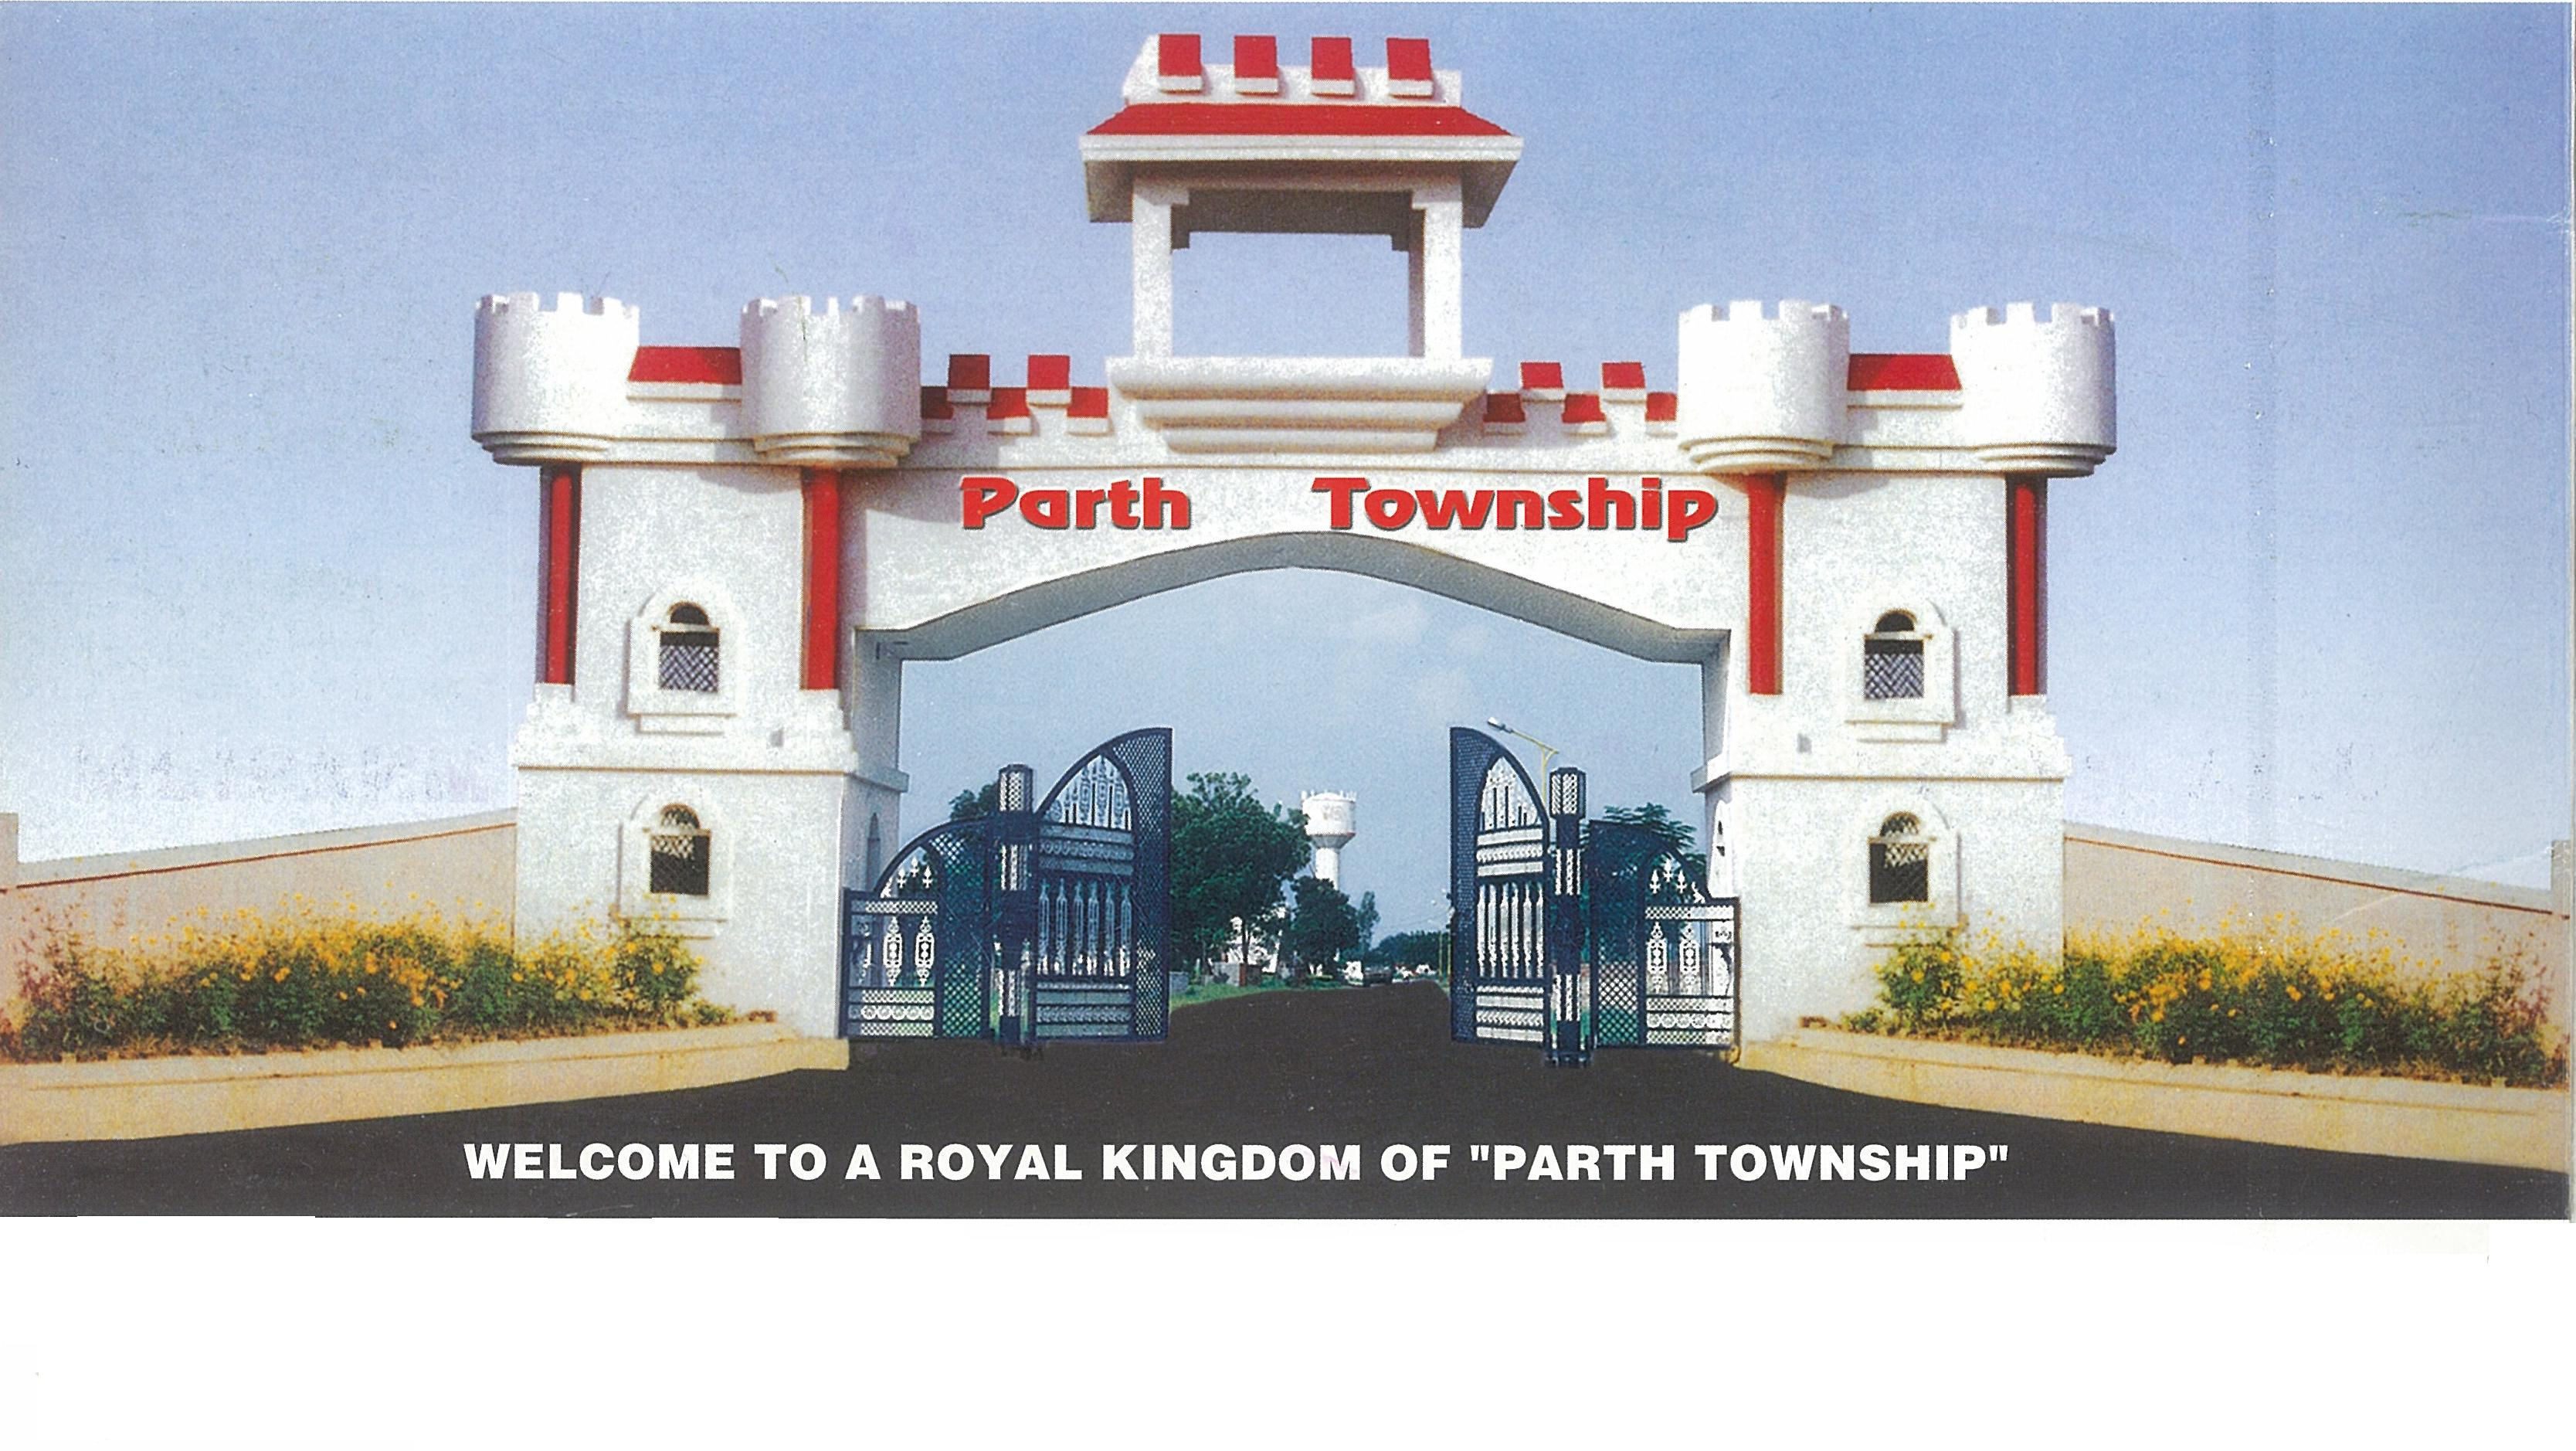 gate township PARTH TOWNSHIP ENTRANCE GATE